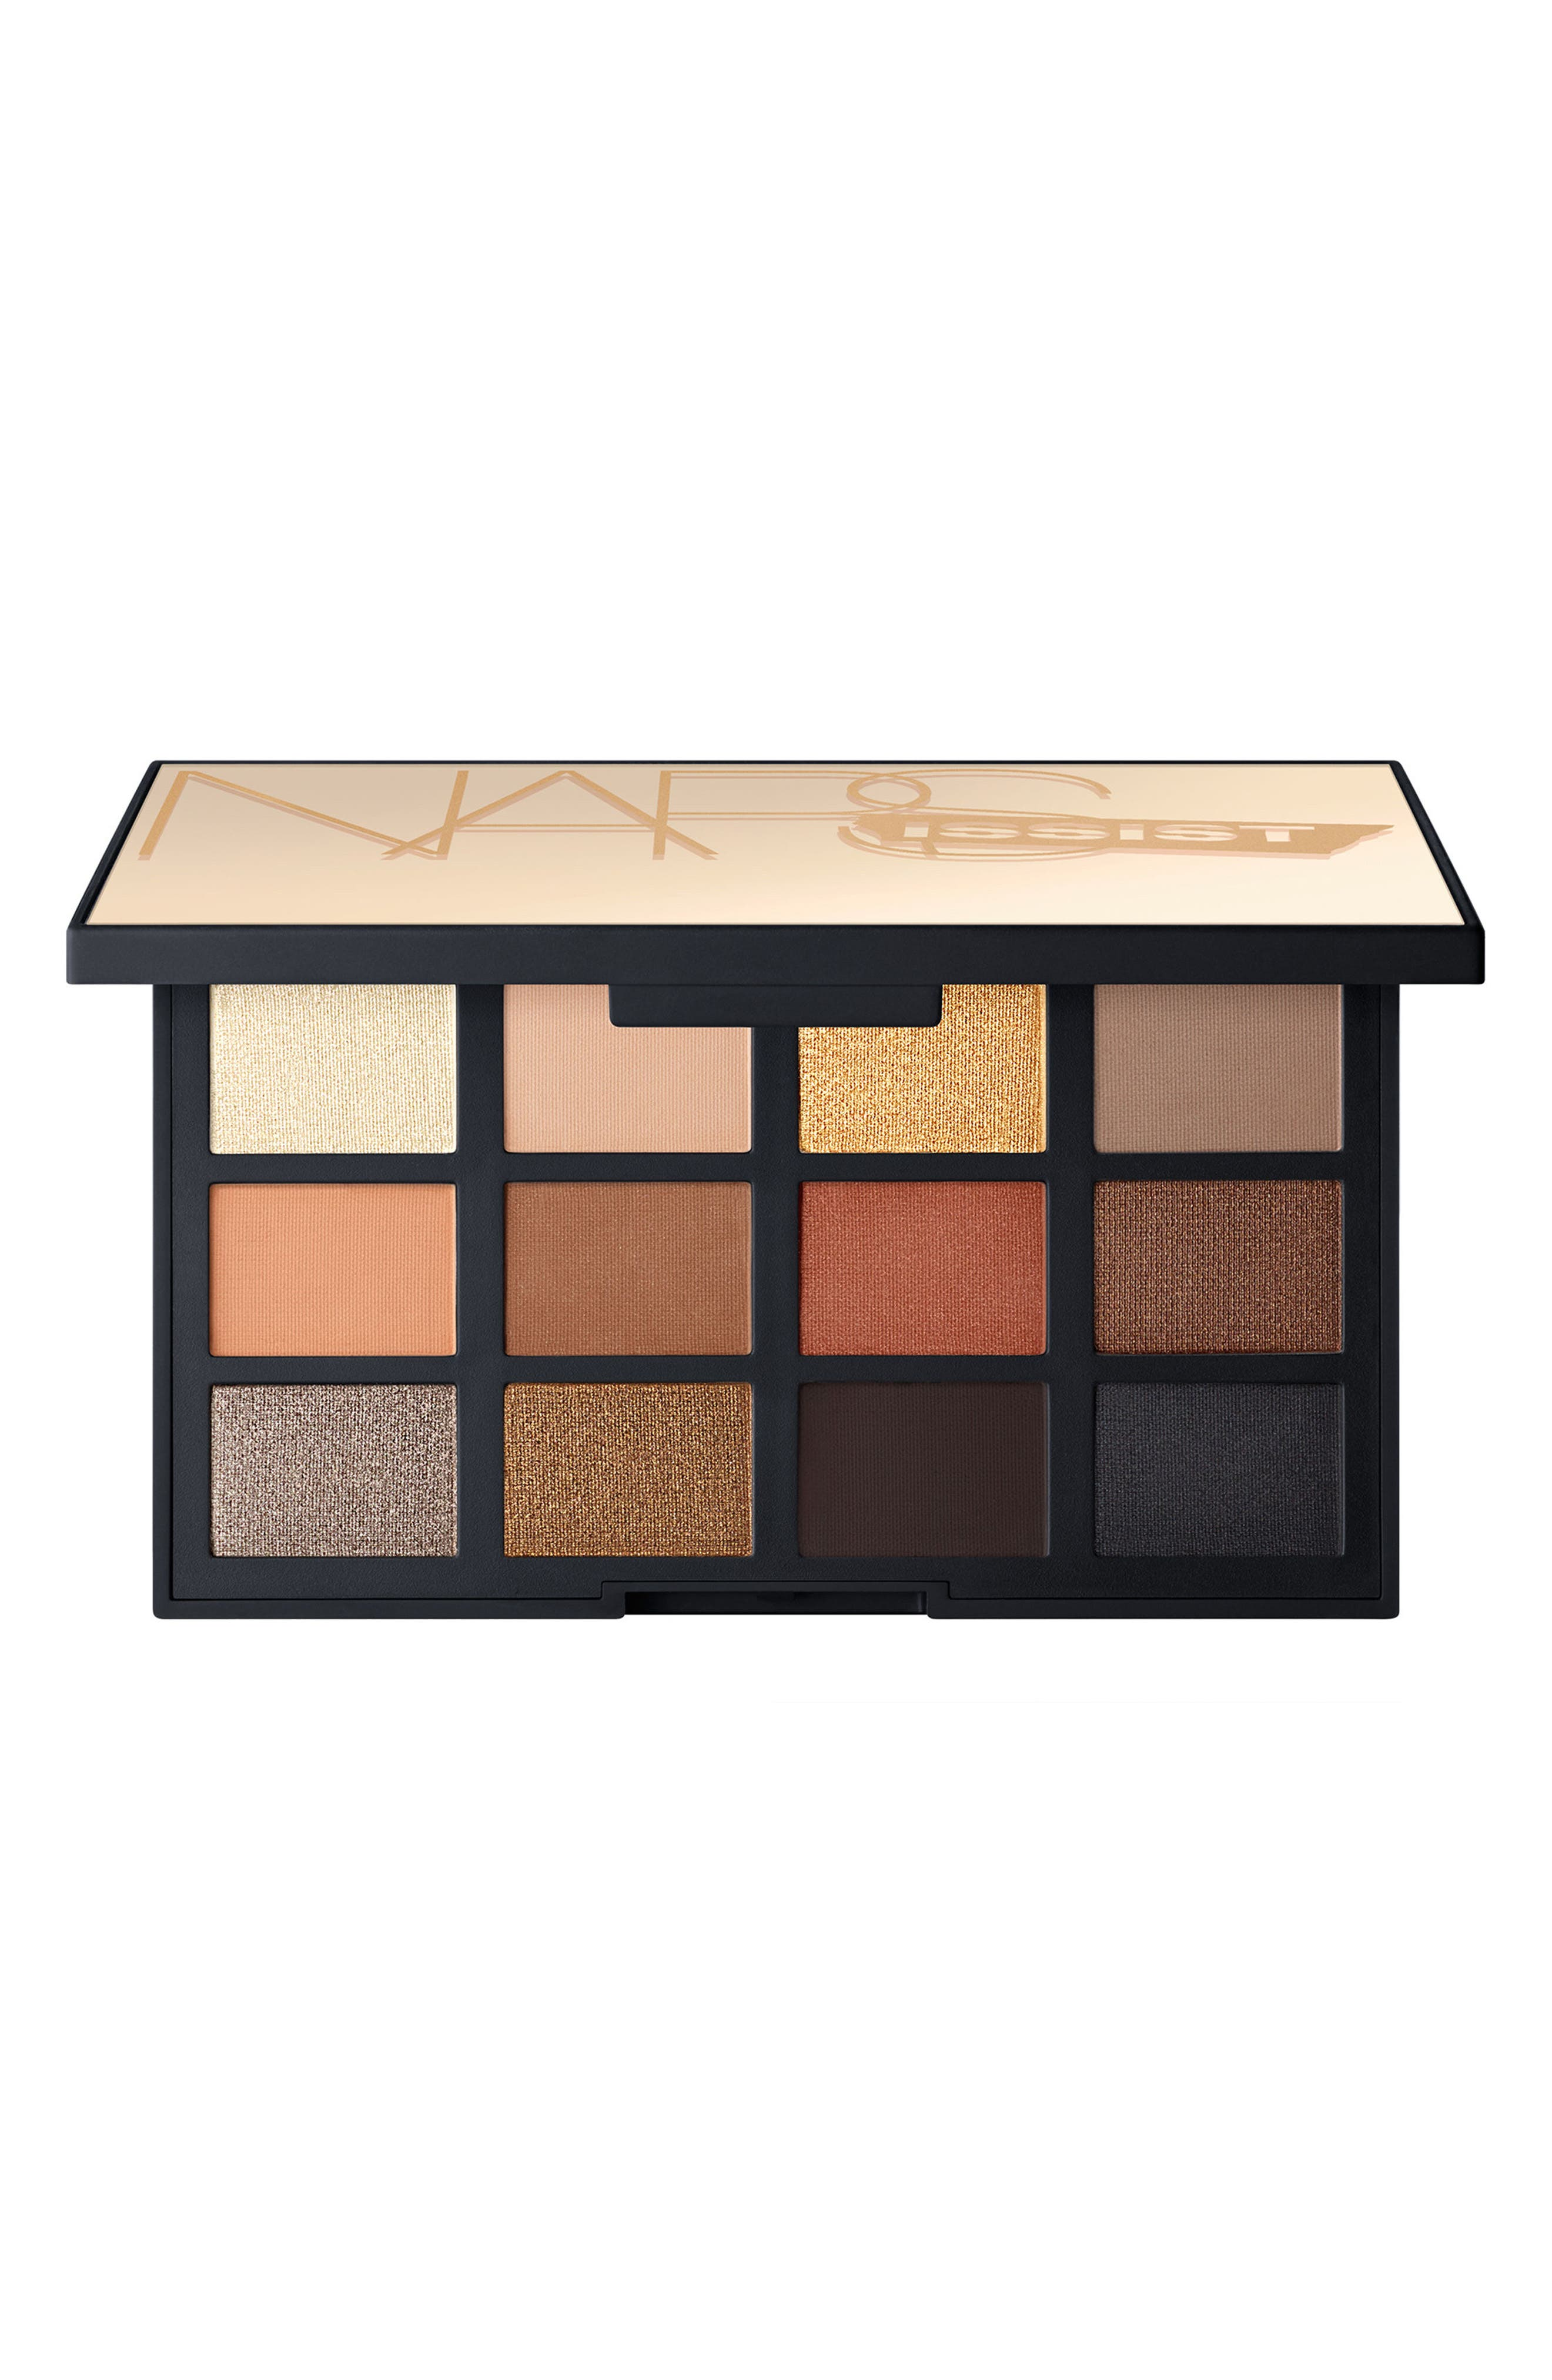 NARSissist Loaded Eyeshadow Palette,                         Main,                         color, No Color